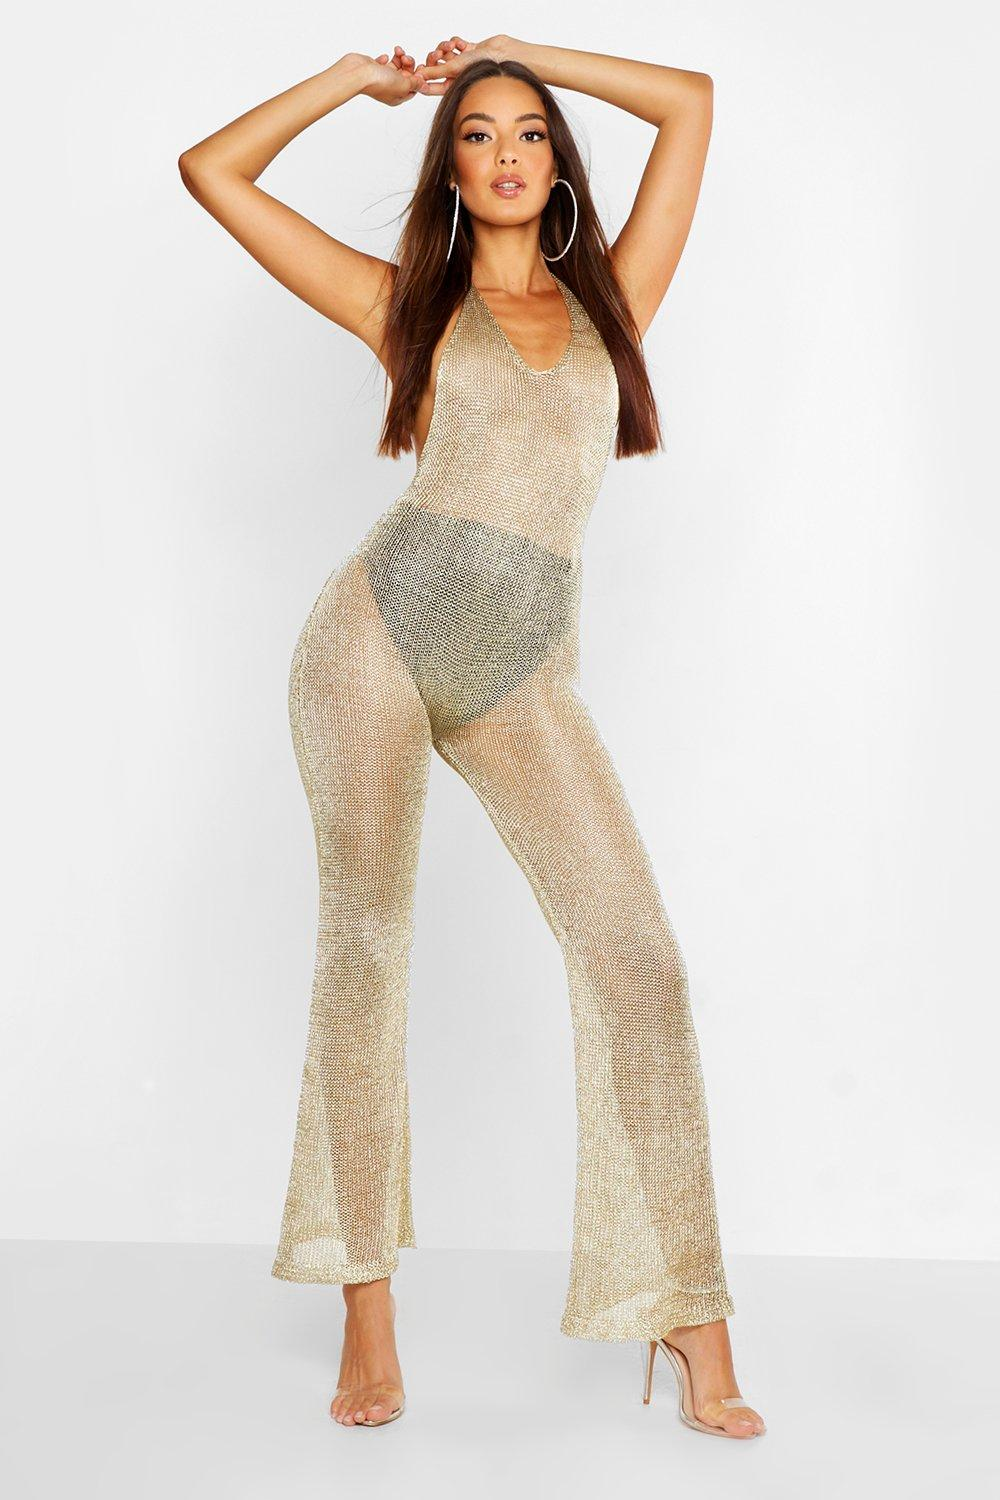 Womens Neckholder-Jumpsuit aus Strick in Metallic-Optik - Gold - L, Gold - Boohoo.com